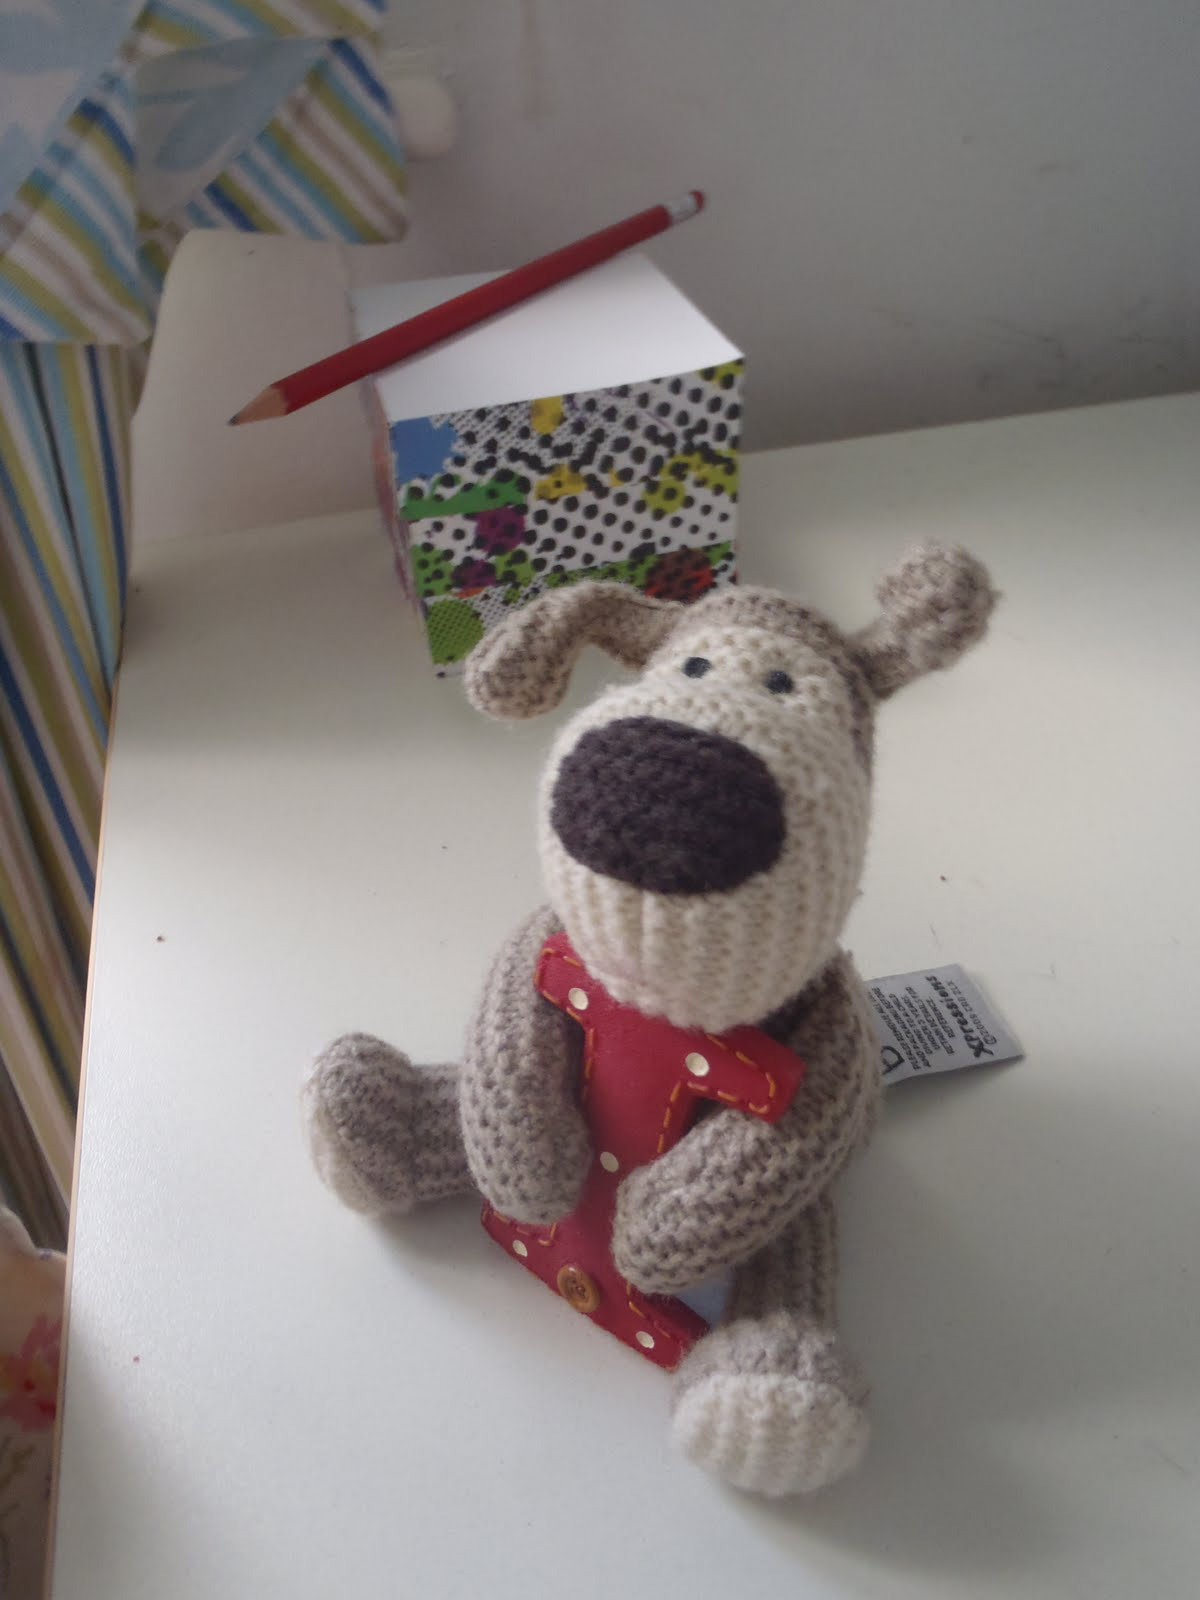 Confessions of an Oxfordshire stitcher: B,C,D:Boofle, Crochet and Dogs!